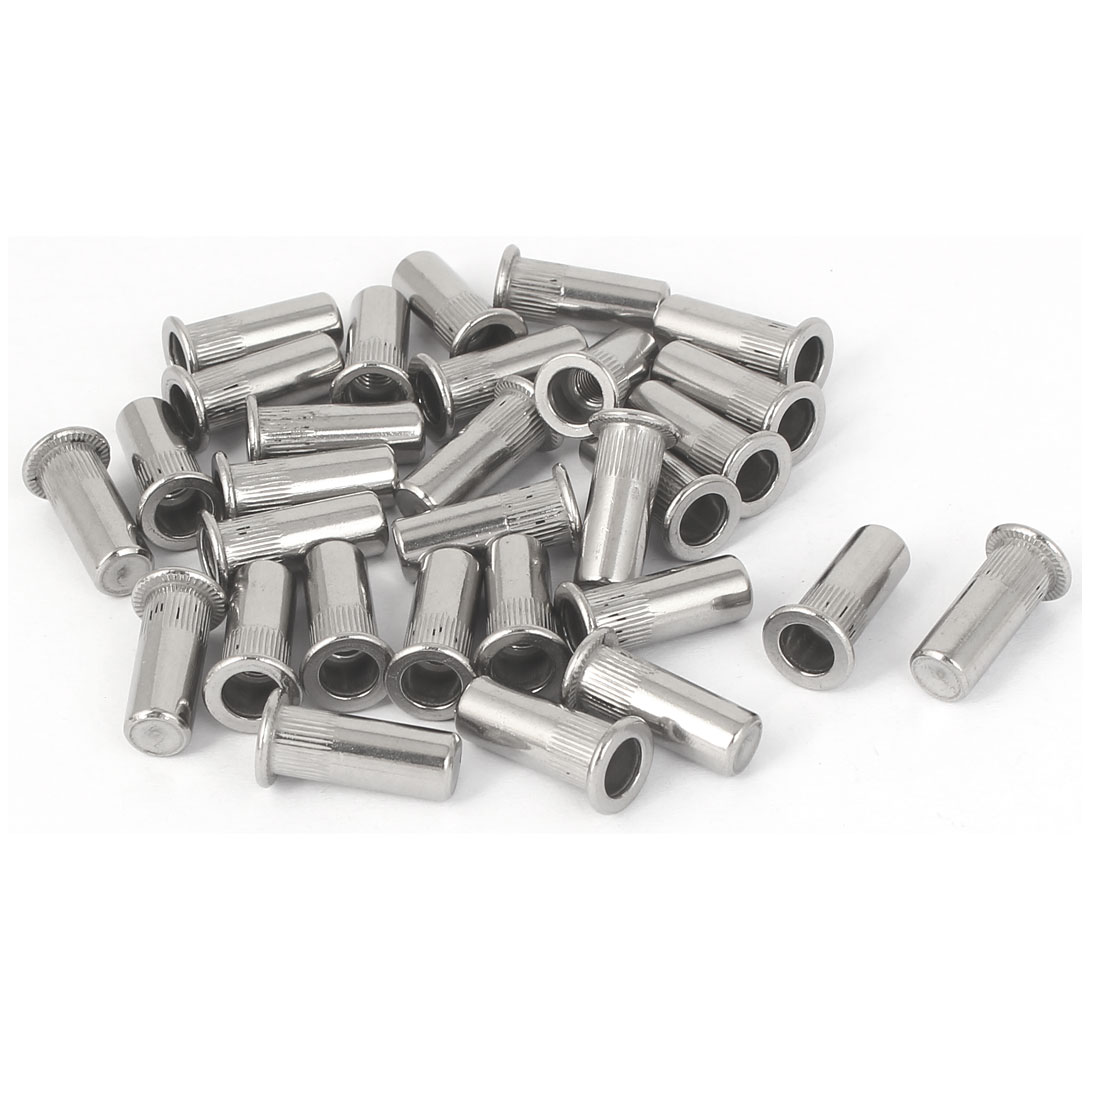 M5x18.5mm 304 Stainless Steel Straight Knurled Closed End Rivet Nut Fastener 30pcs